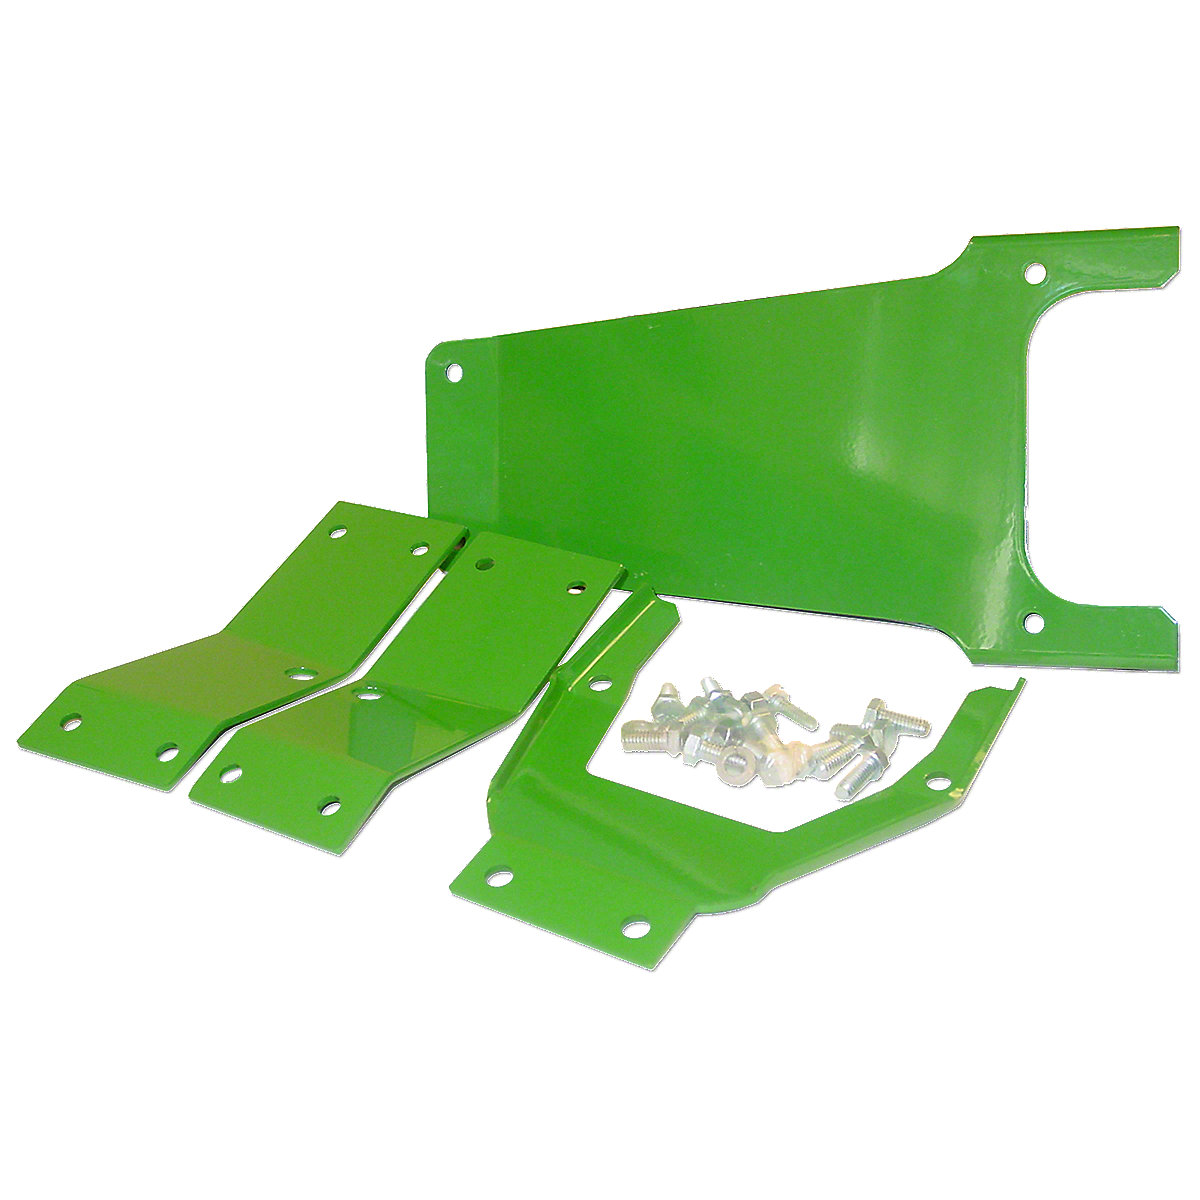 JDS577Seat Cushion Support Plate Kit